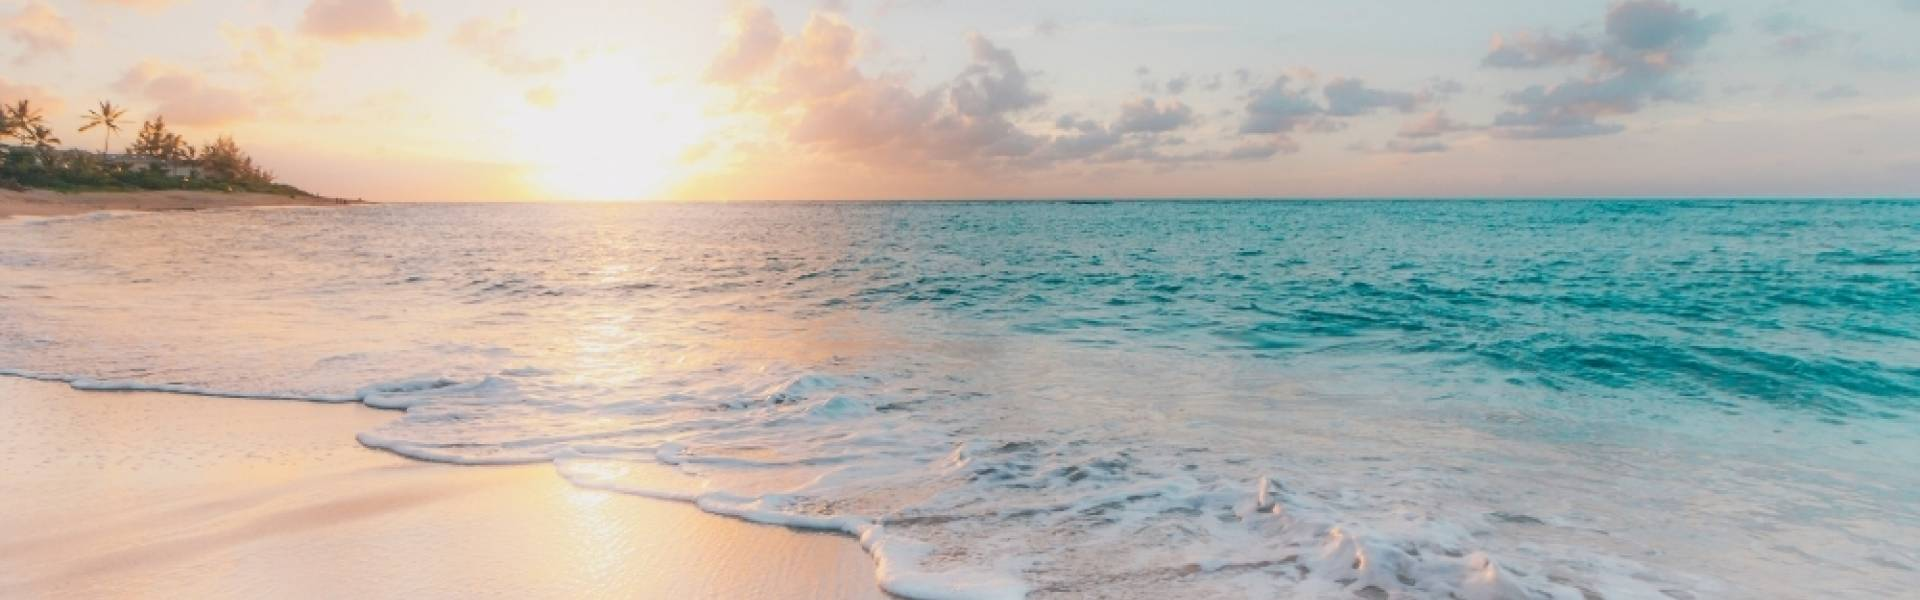 Essential Items To Pack For Your Destin, Florida Vacation